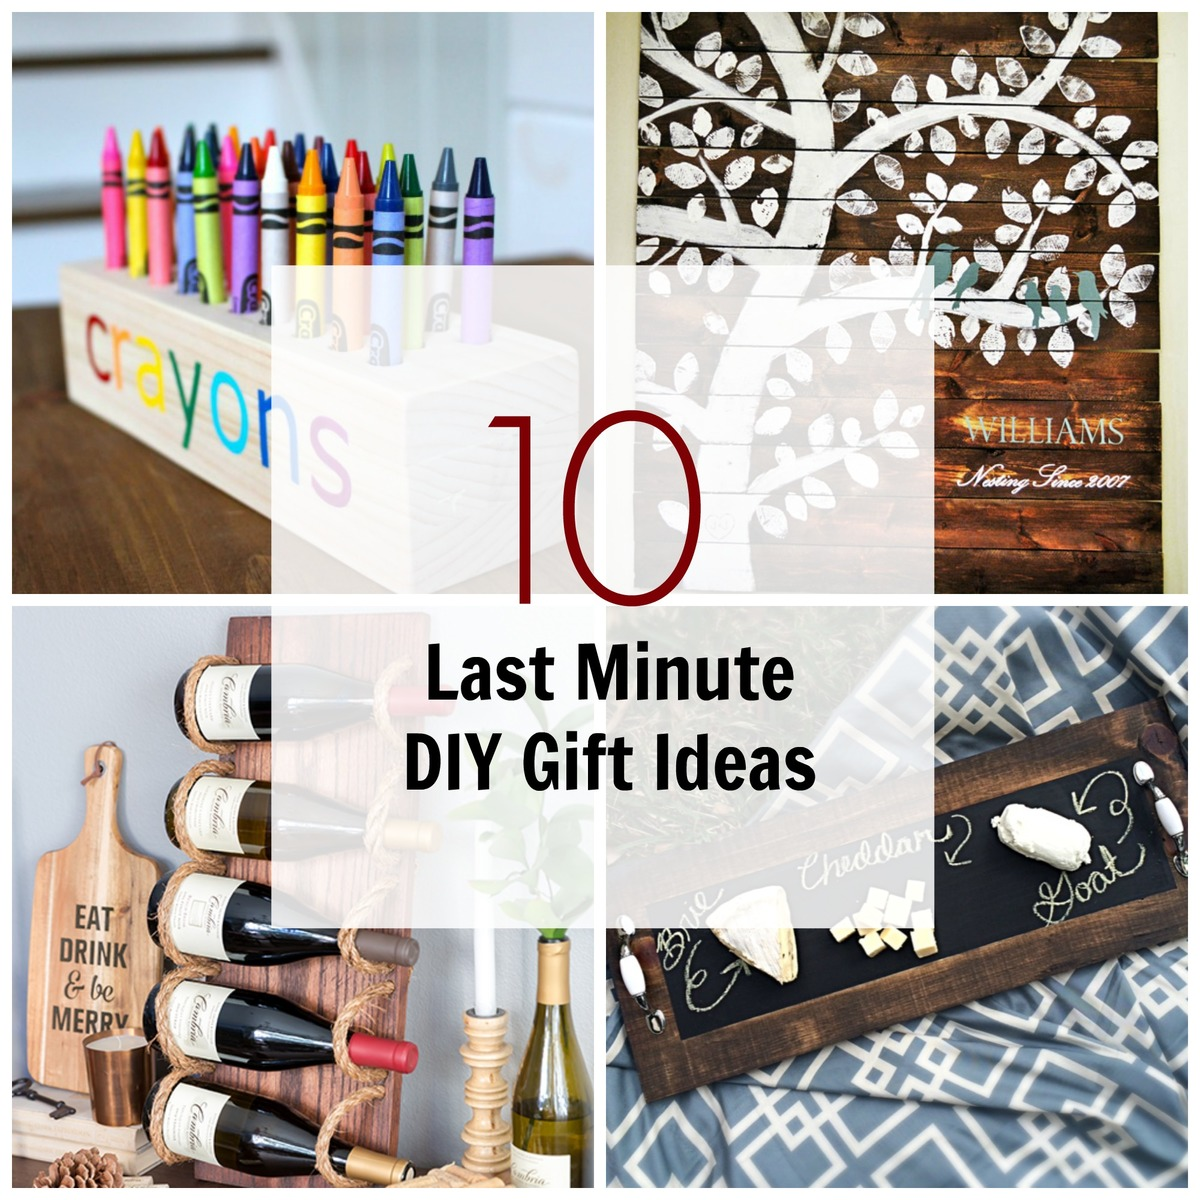 10 Last Minute DIY Wood Gifts That You Can Make